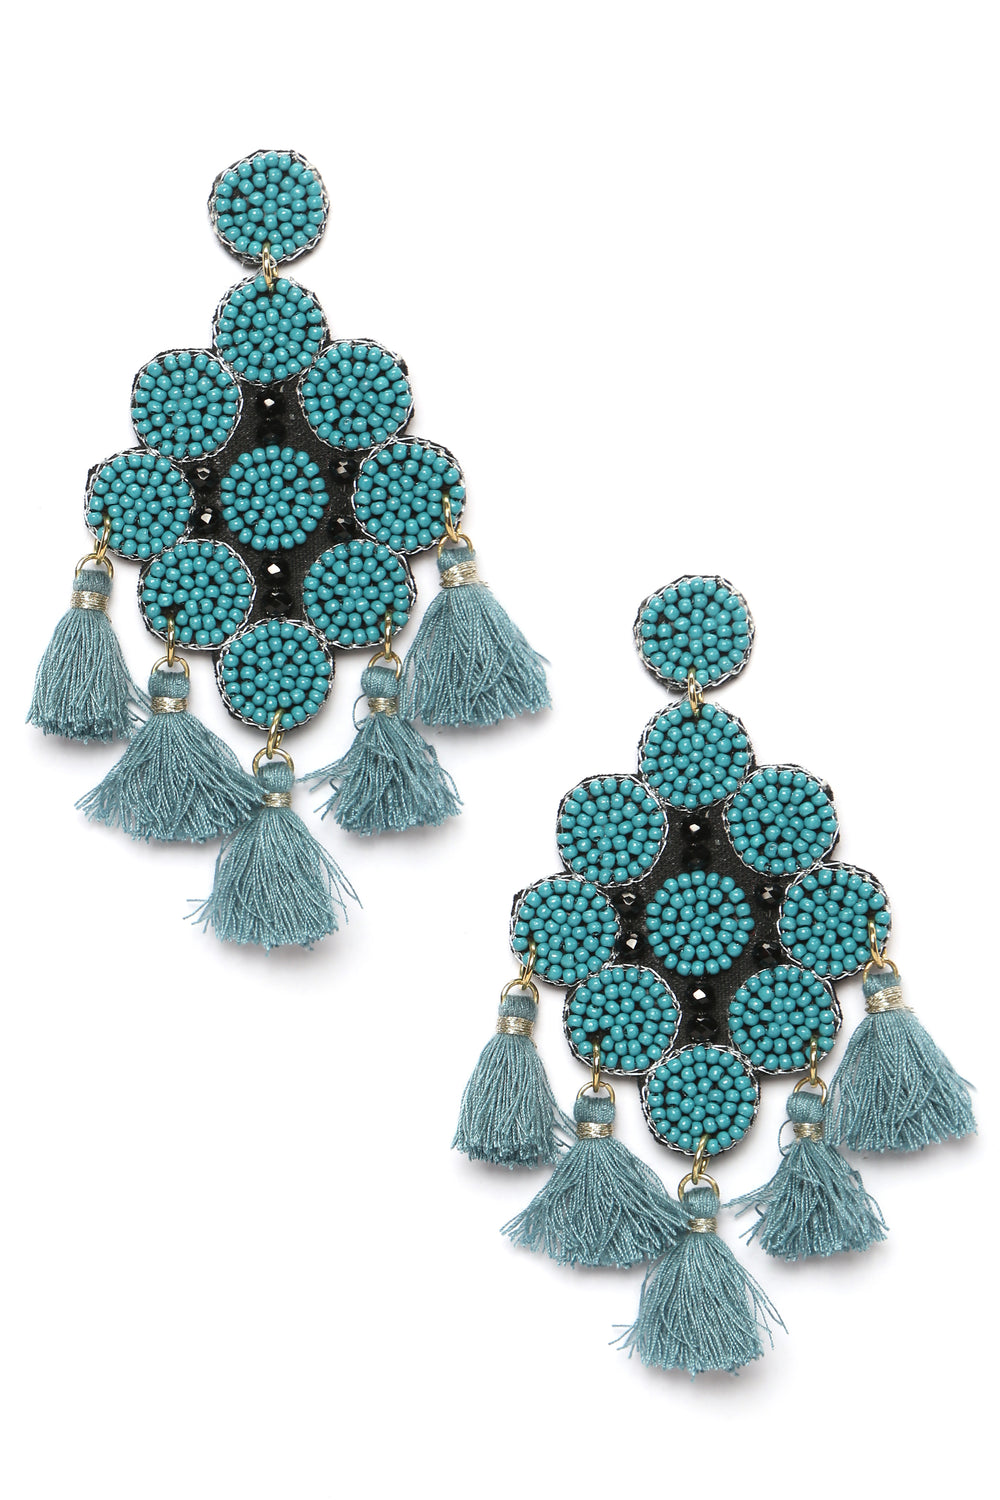 The One To Bead Earrings - Teal